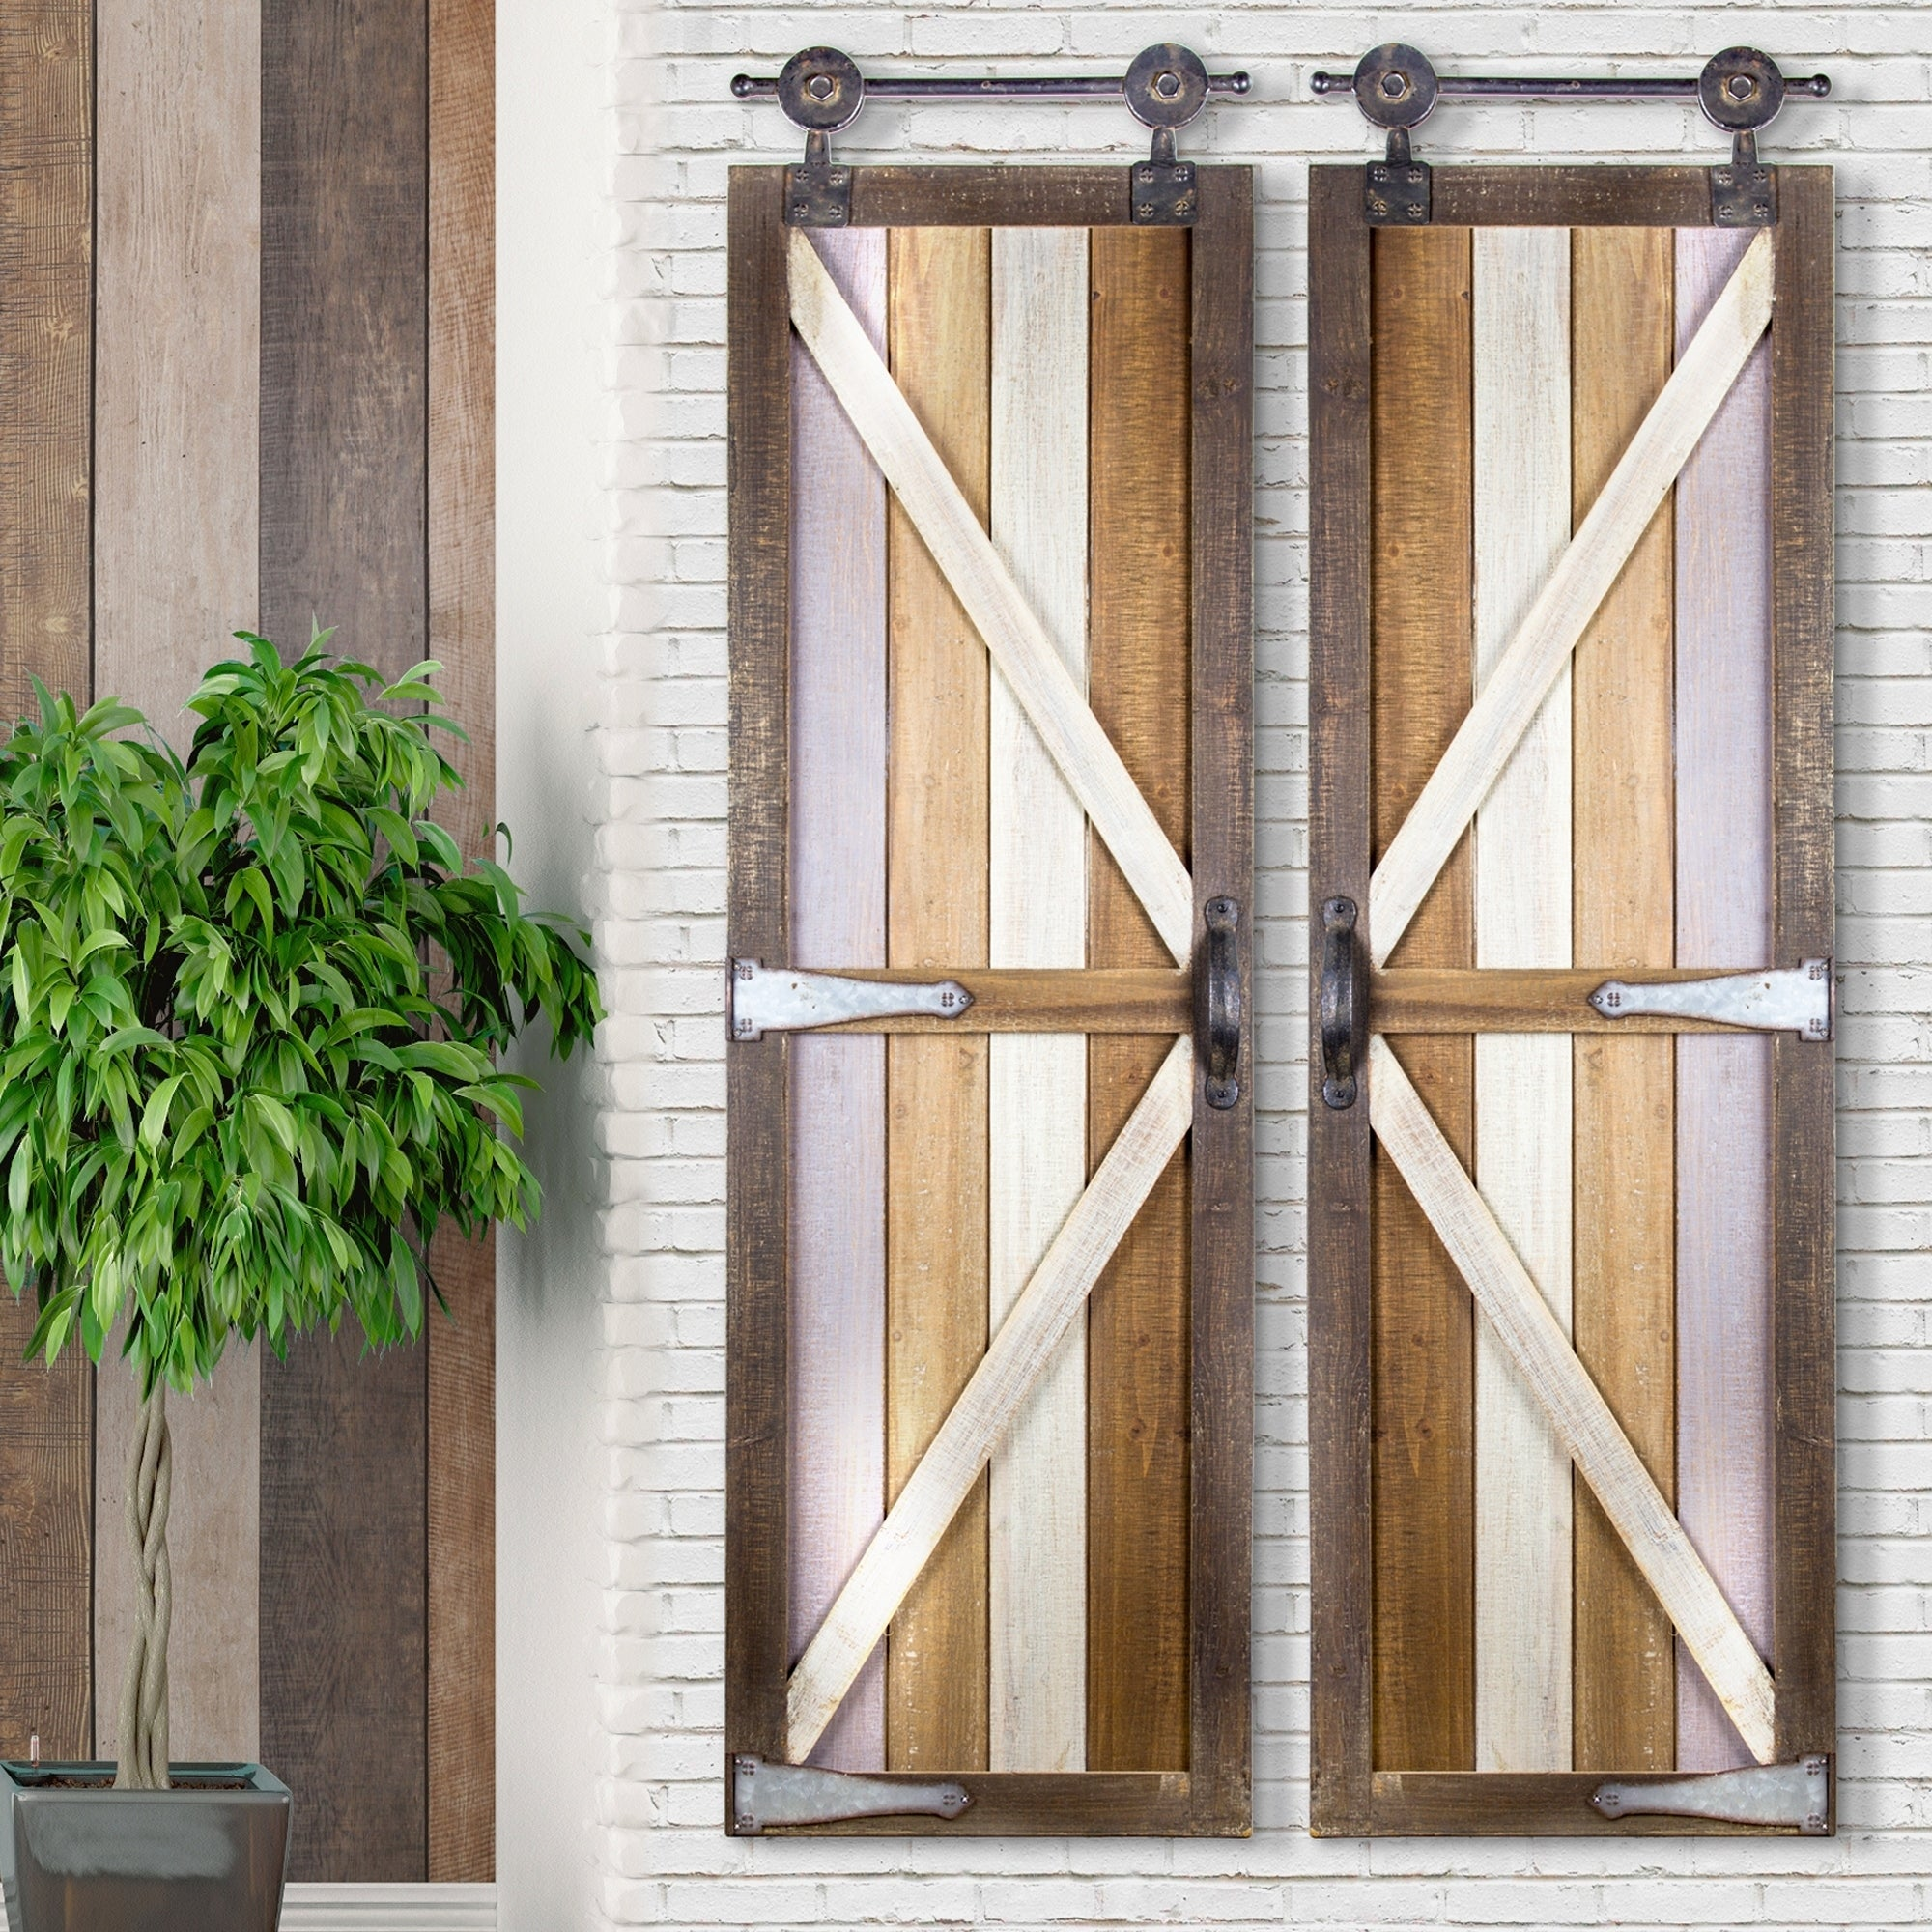 Wood And Metal Door Wall Decor Simple Wood And Metal Door Wall Decor  Wall Plate Design Ideas Design Ideas